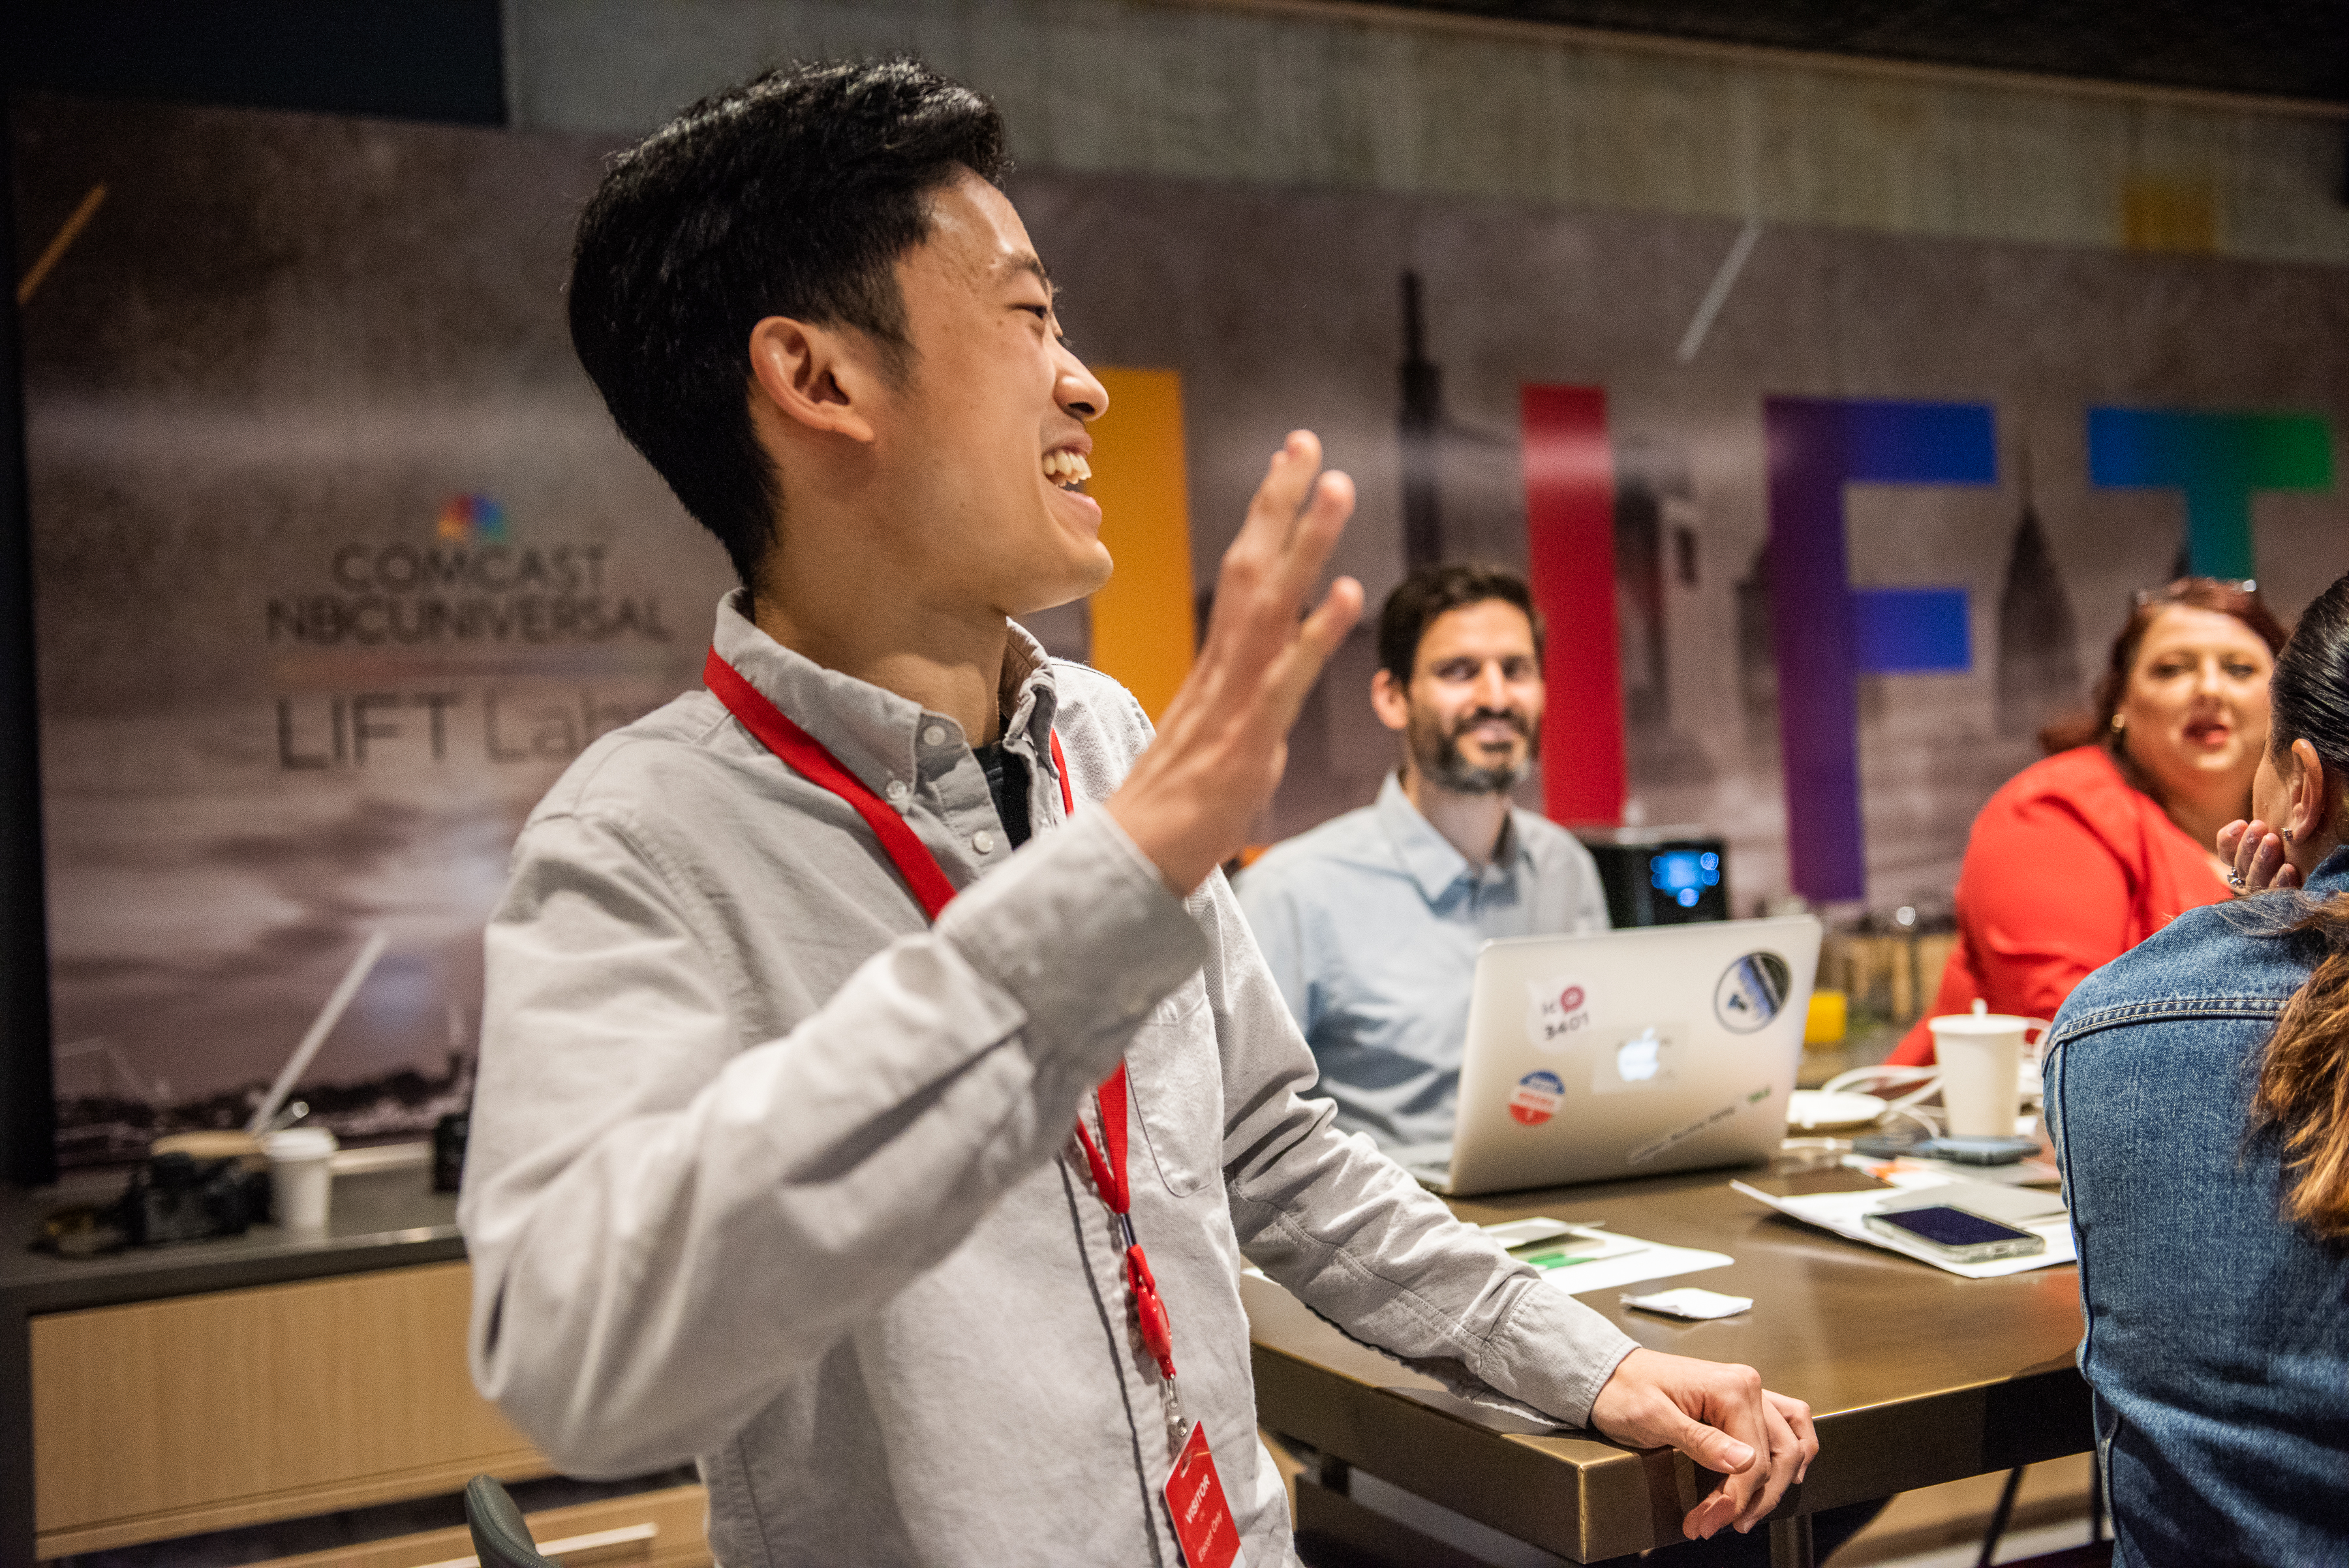 Next Gen Summit Brings Early Stage Founders — and Their Infectious Energy — to LIFT Labs PHL